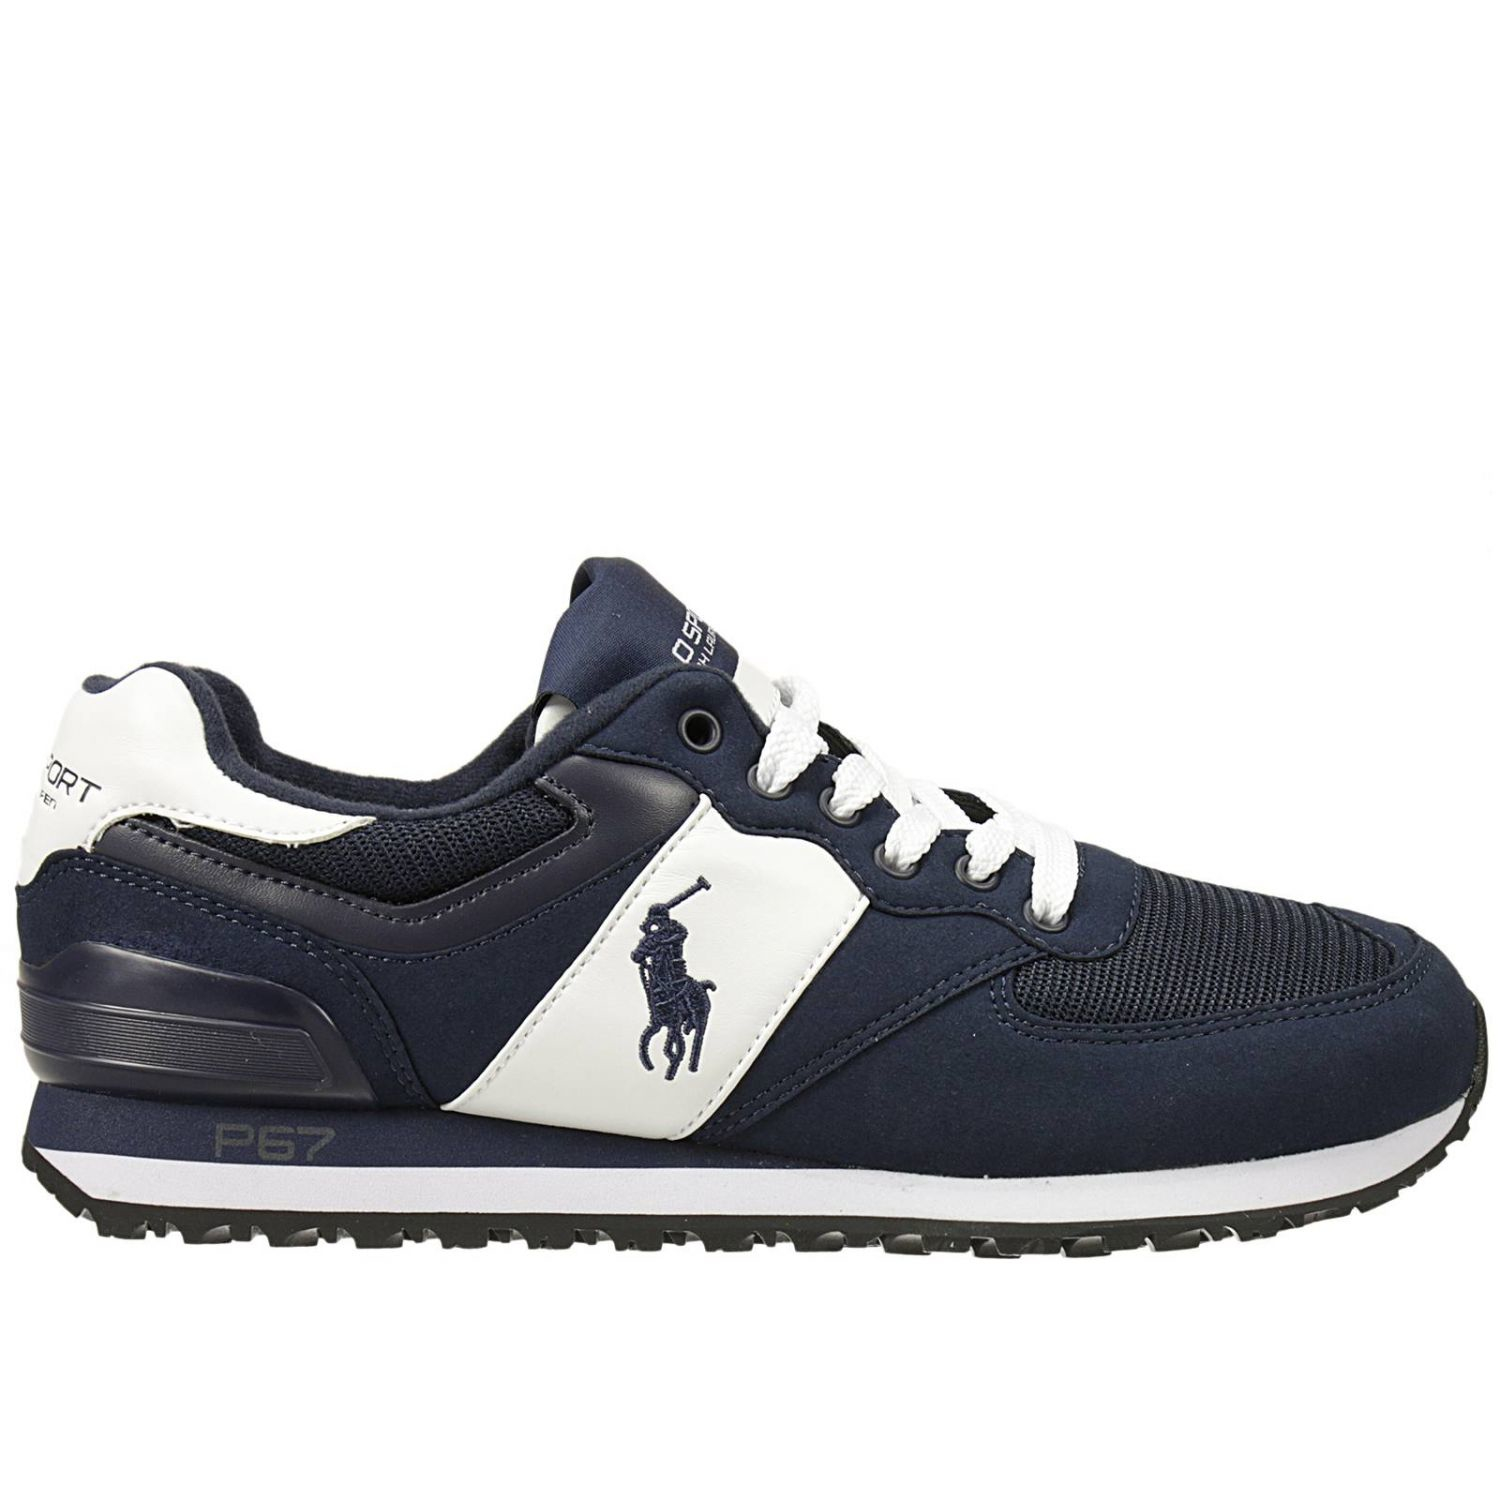 polo ralph lauren ralph lauren men 39 s sneakers in blue for men lyst. Black Bedroom Furniture Sets. Home Design Ideas